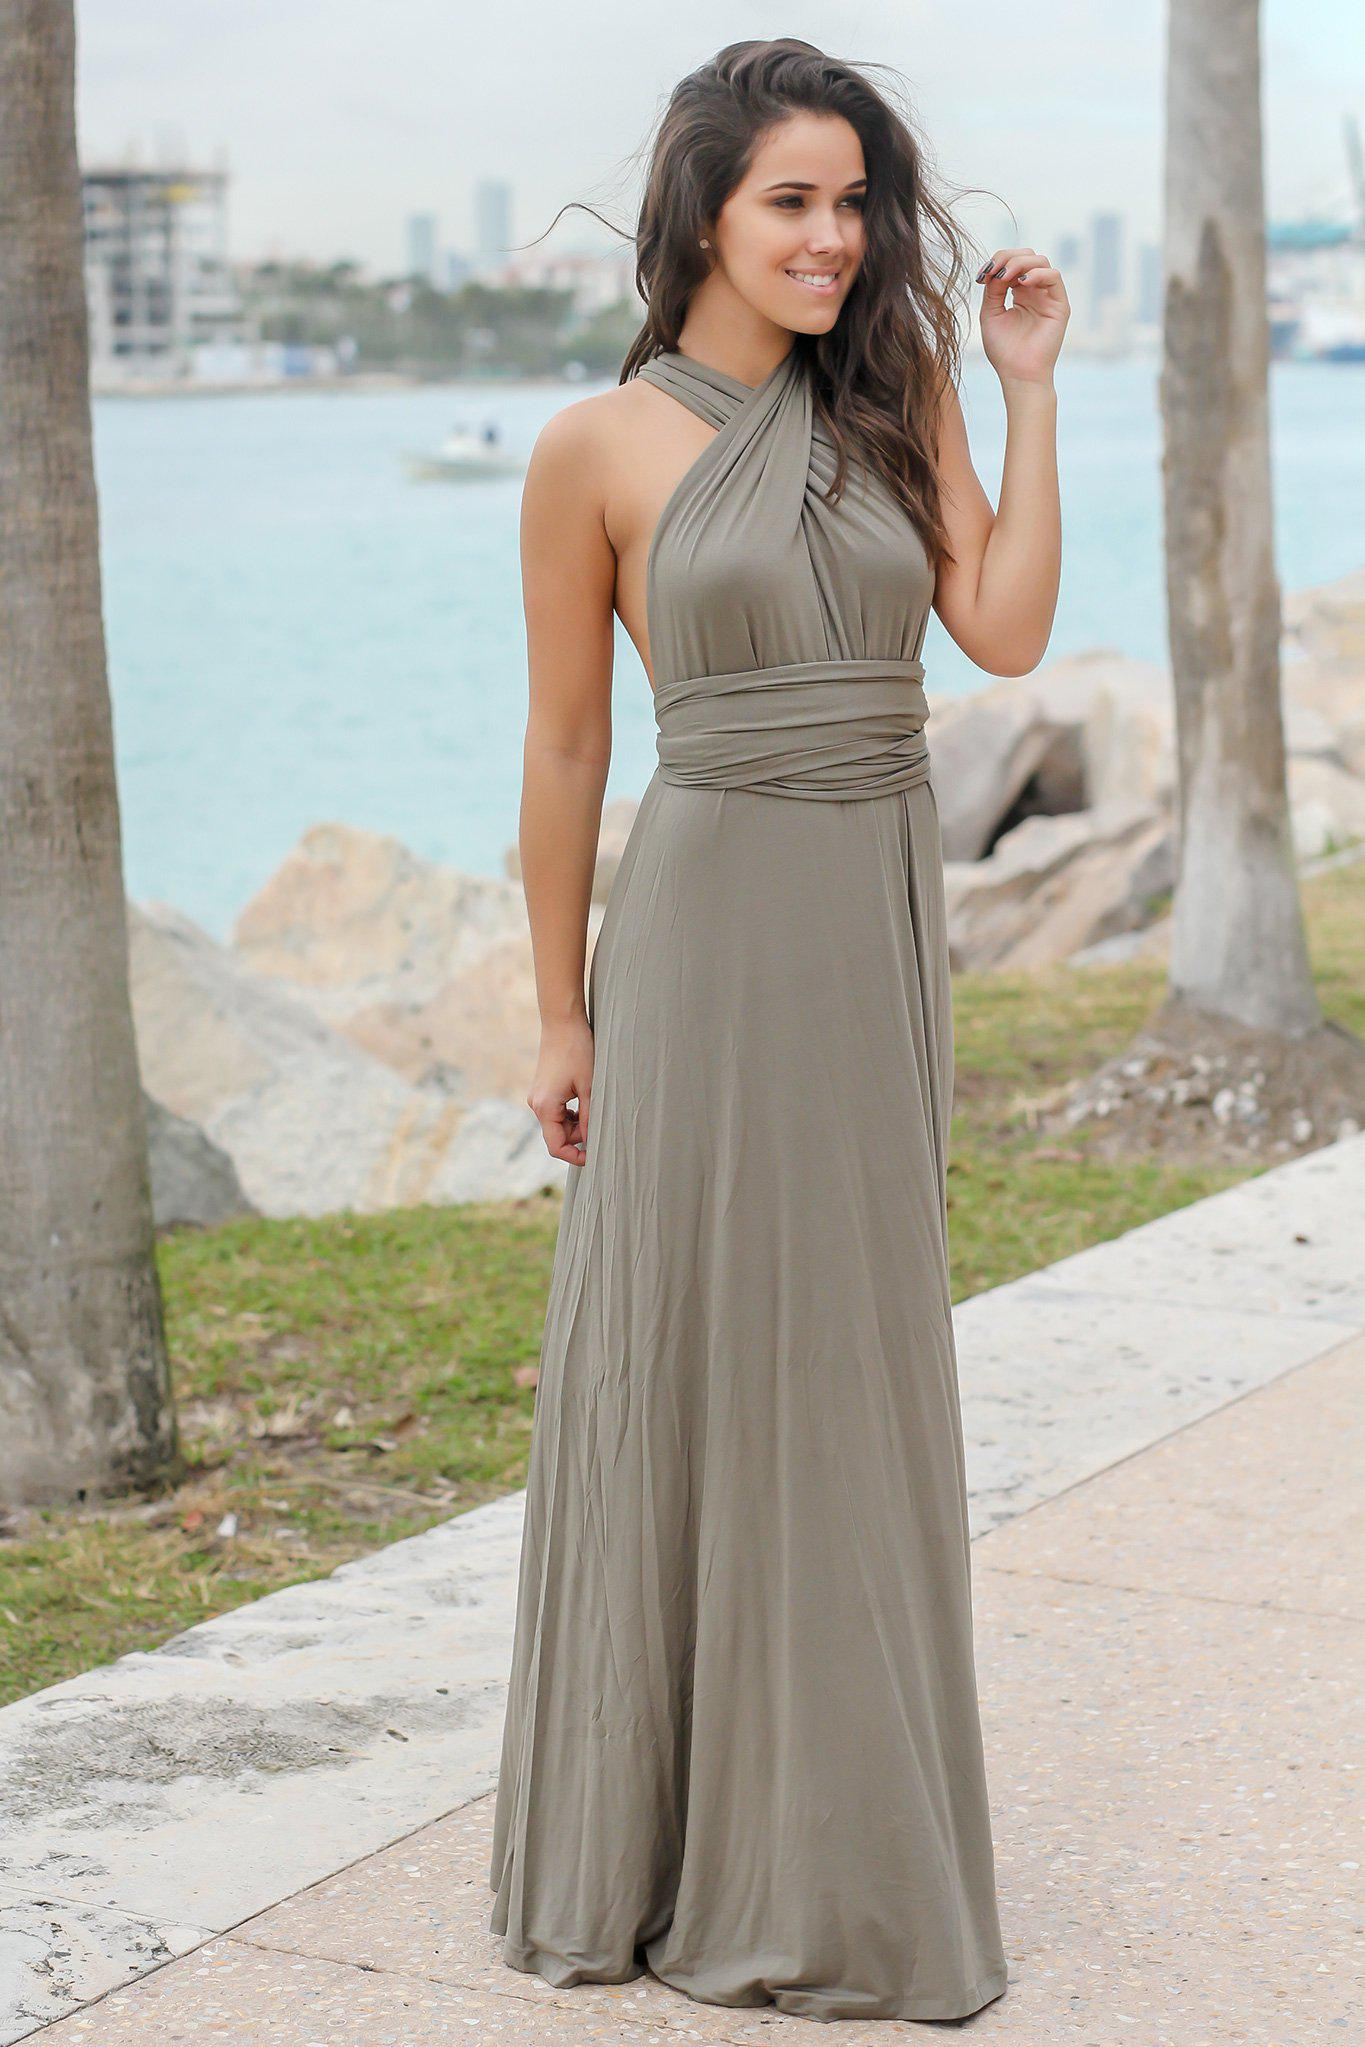 Olive Tie Maxi Dress With Open Back Maxi Dresses Saved By The Dress